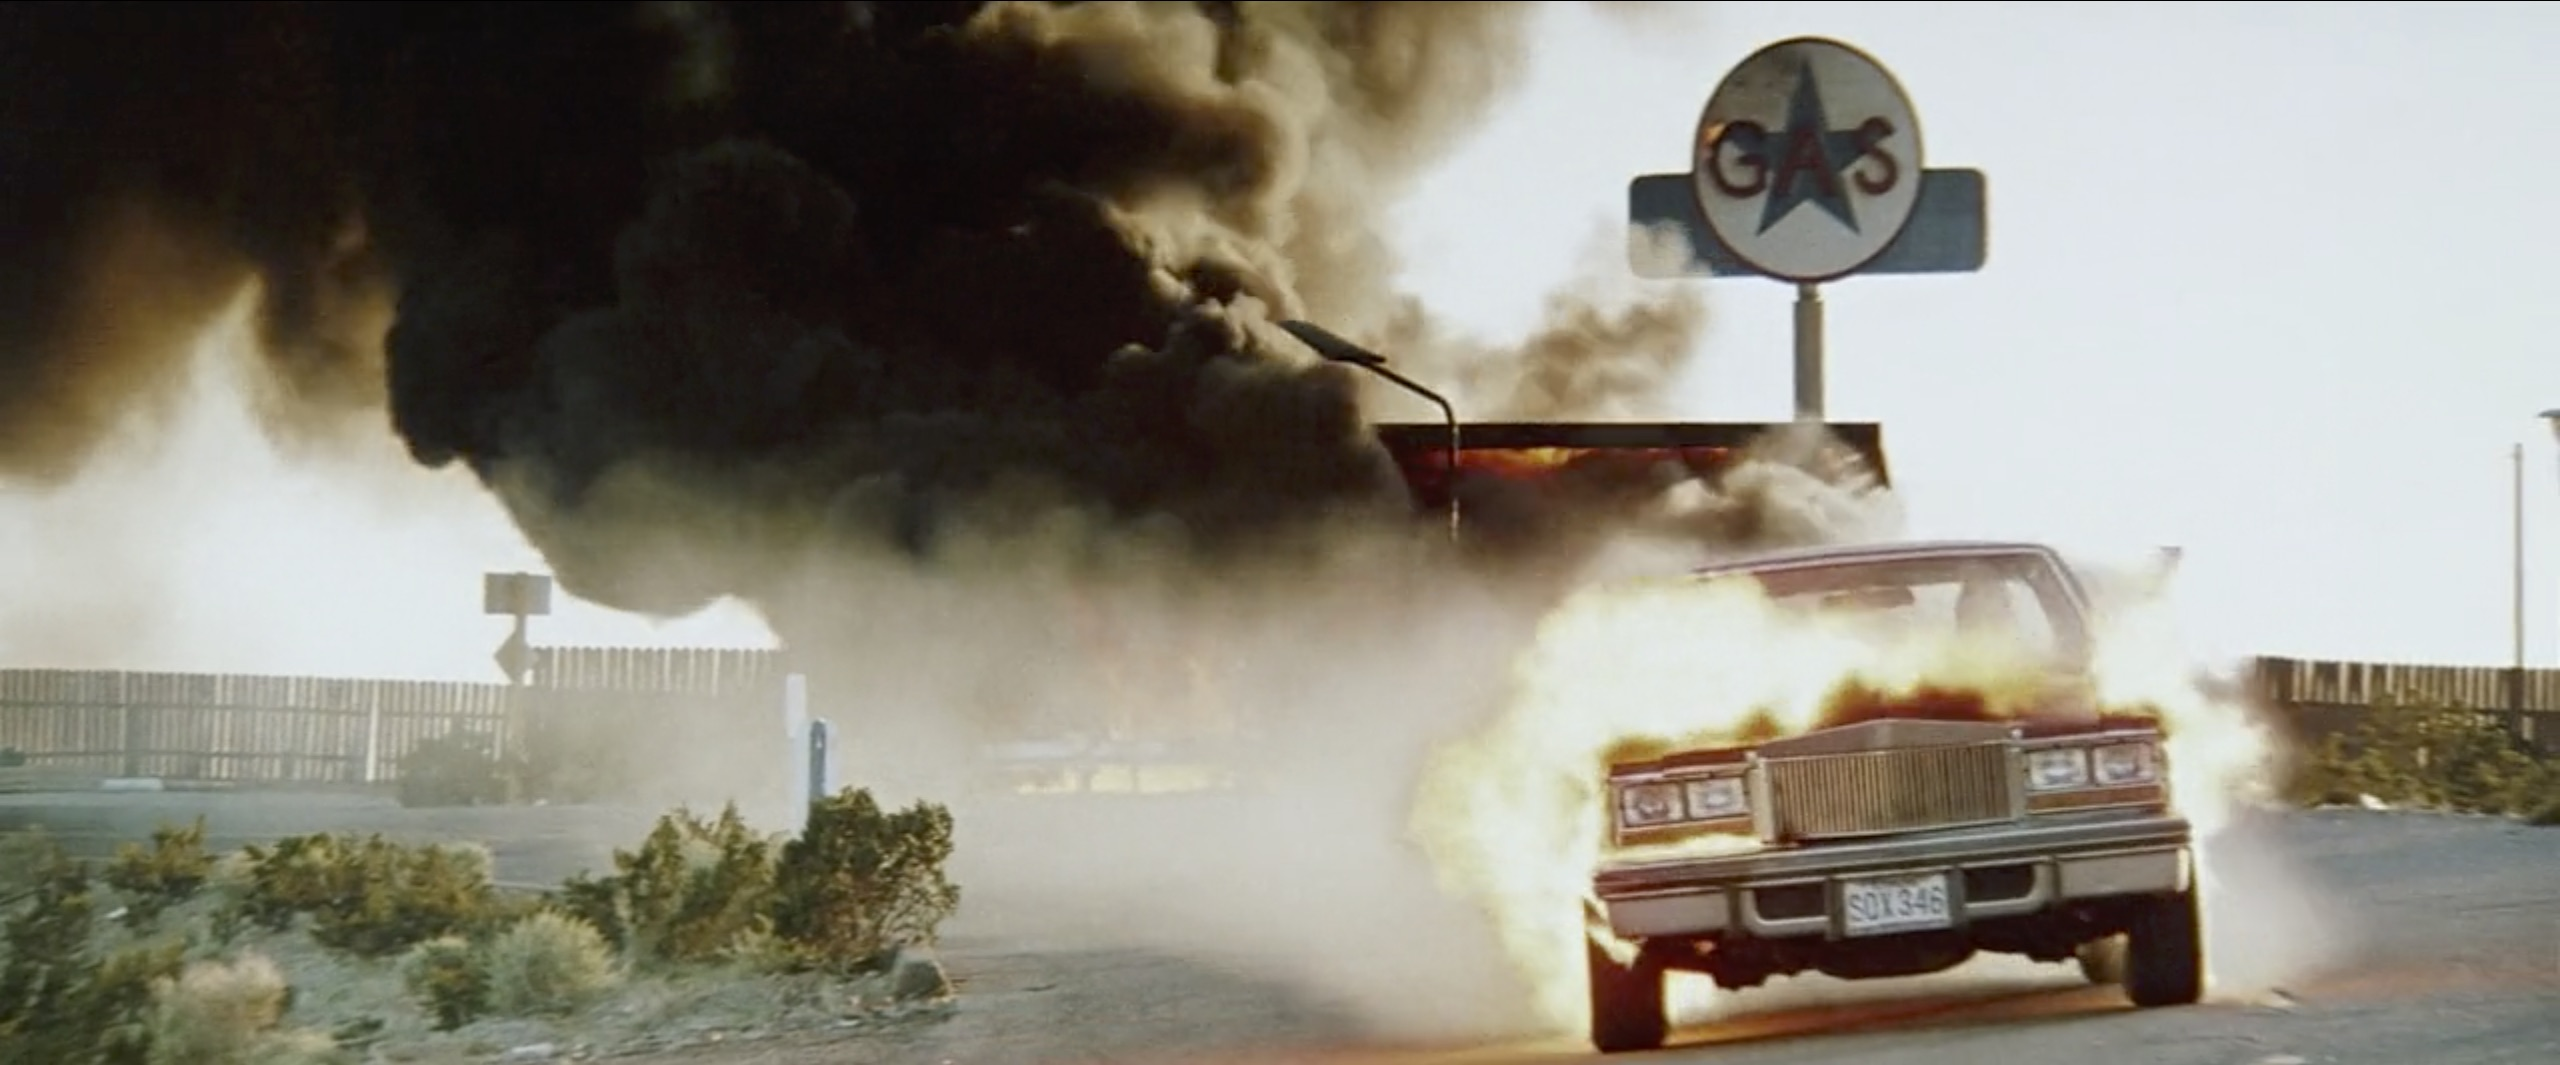 hitcher cadillac on fire gas station